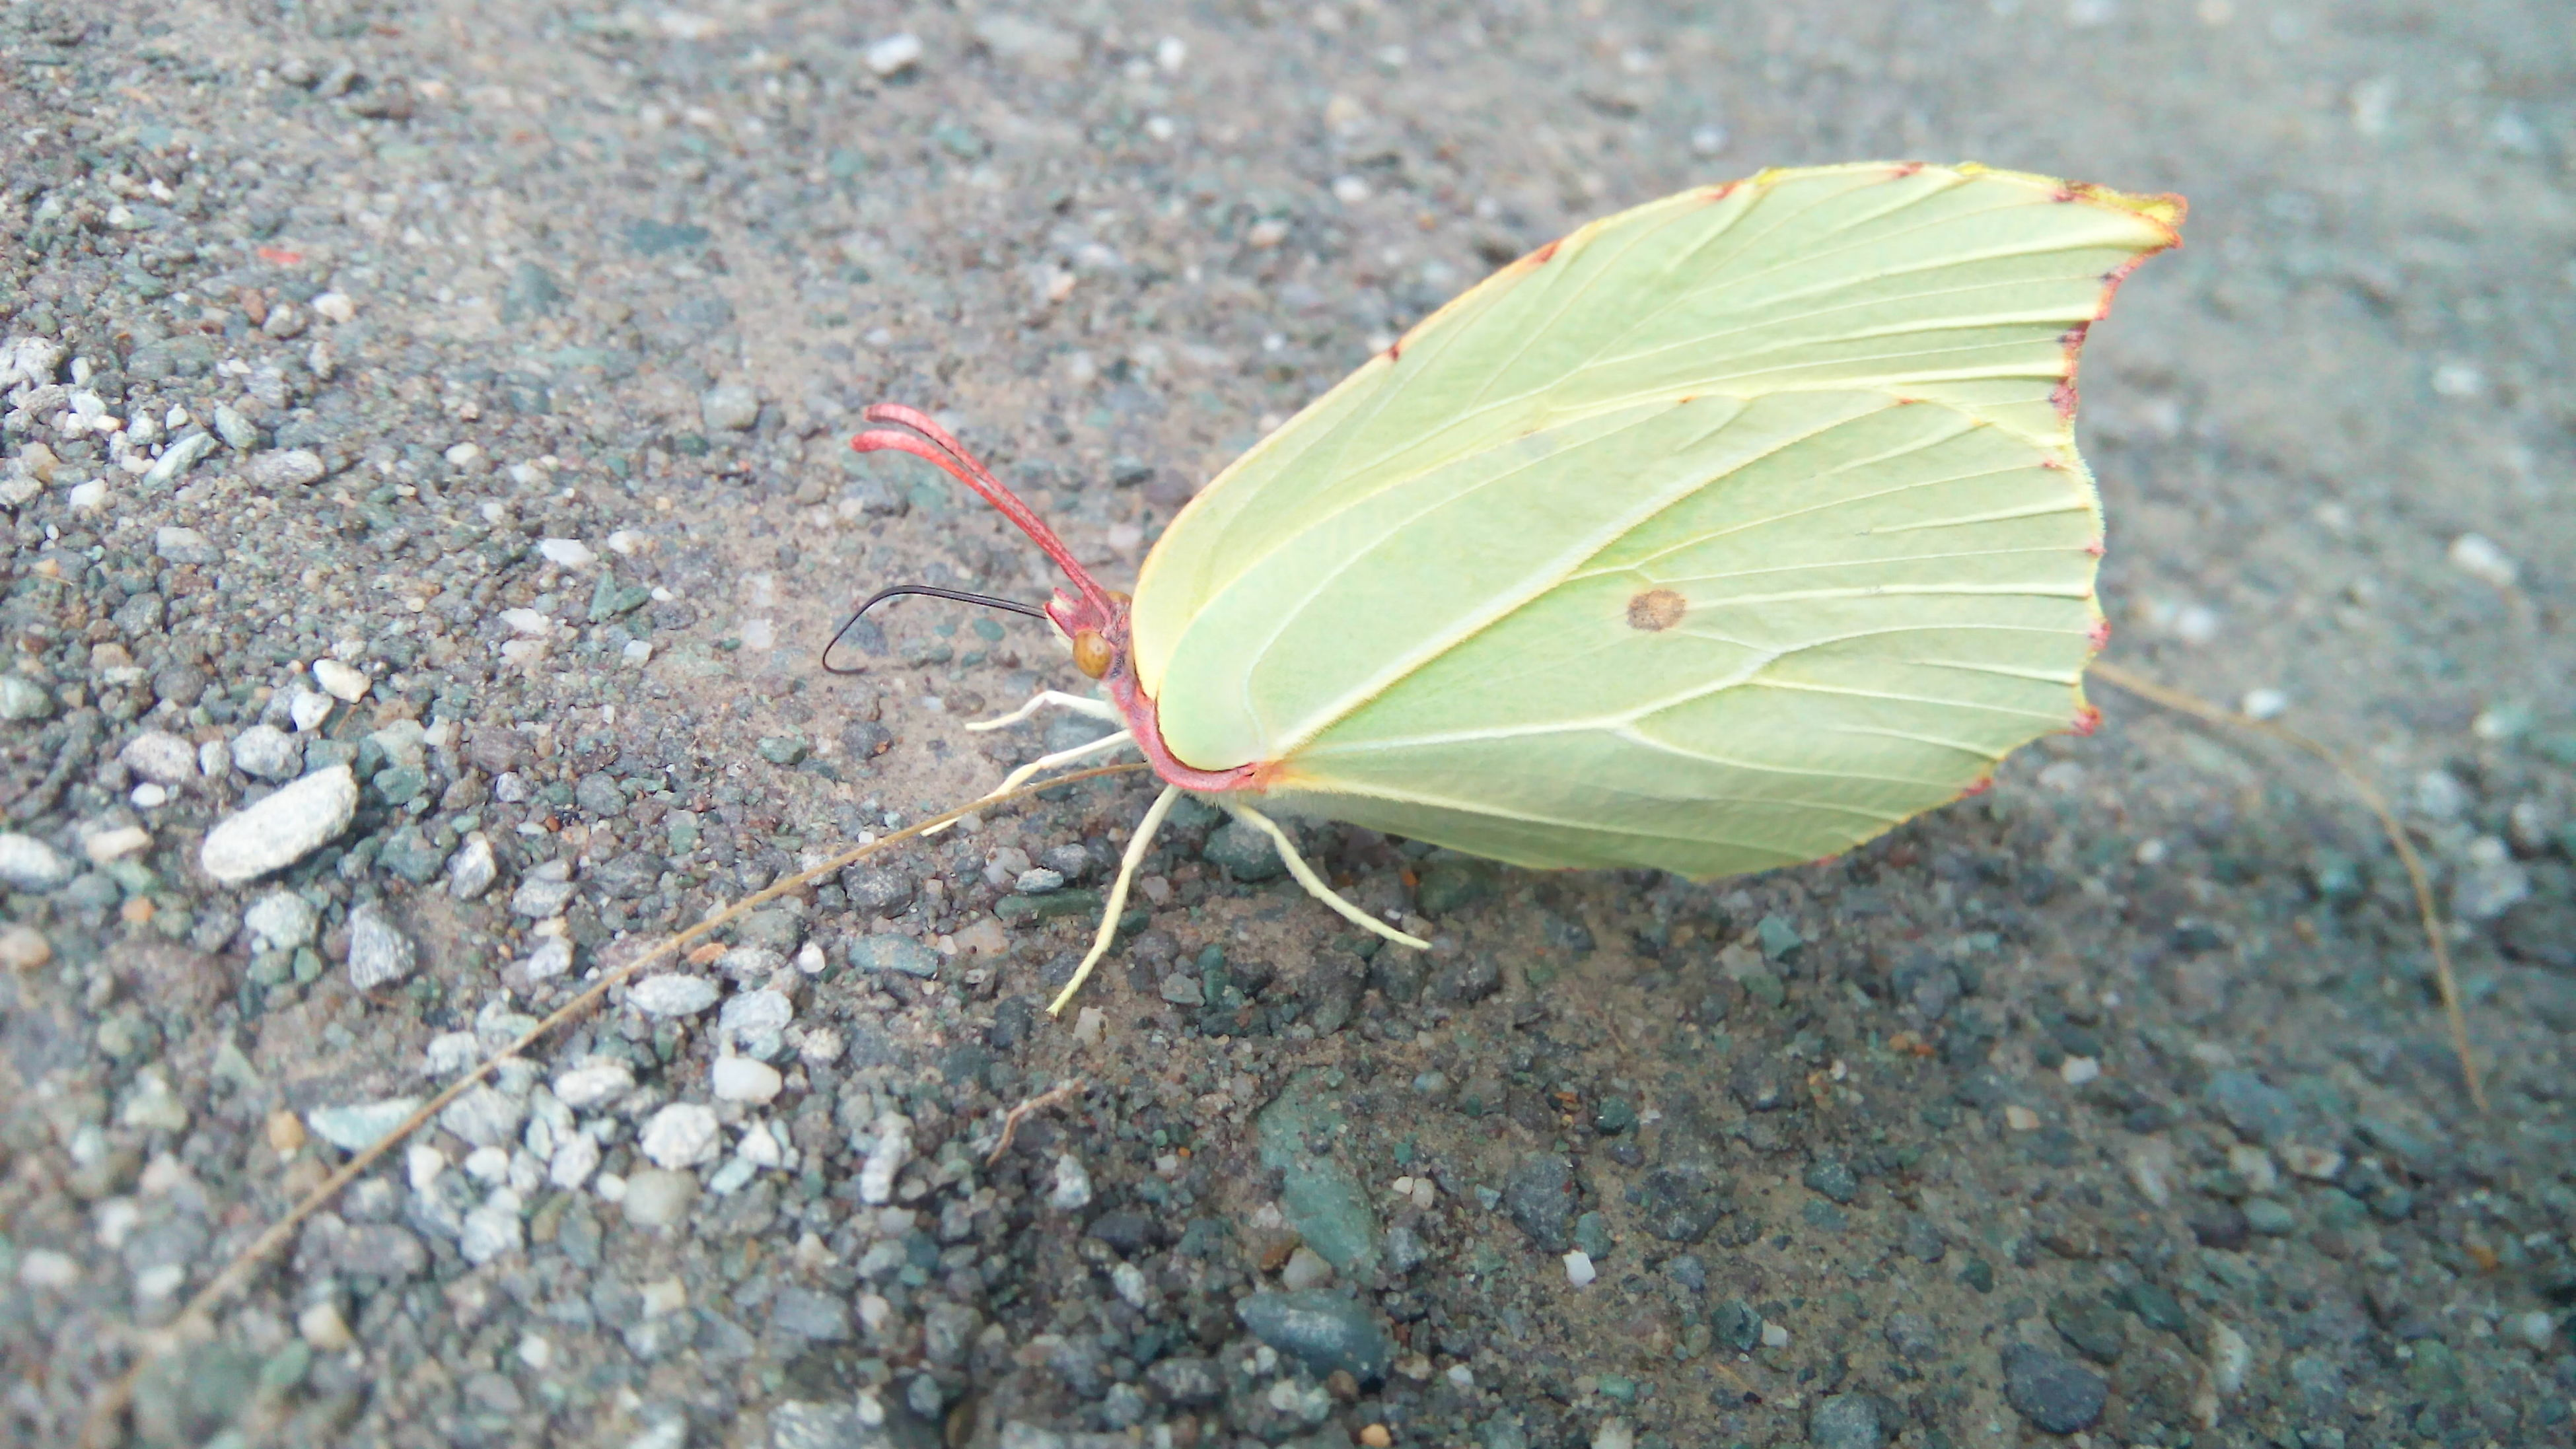 leaf, insect, nature, close-up, animal themes, one animal, no people, plant, outdoors, animals in the wild, day, beauty in nature